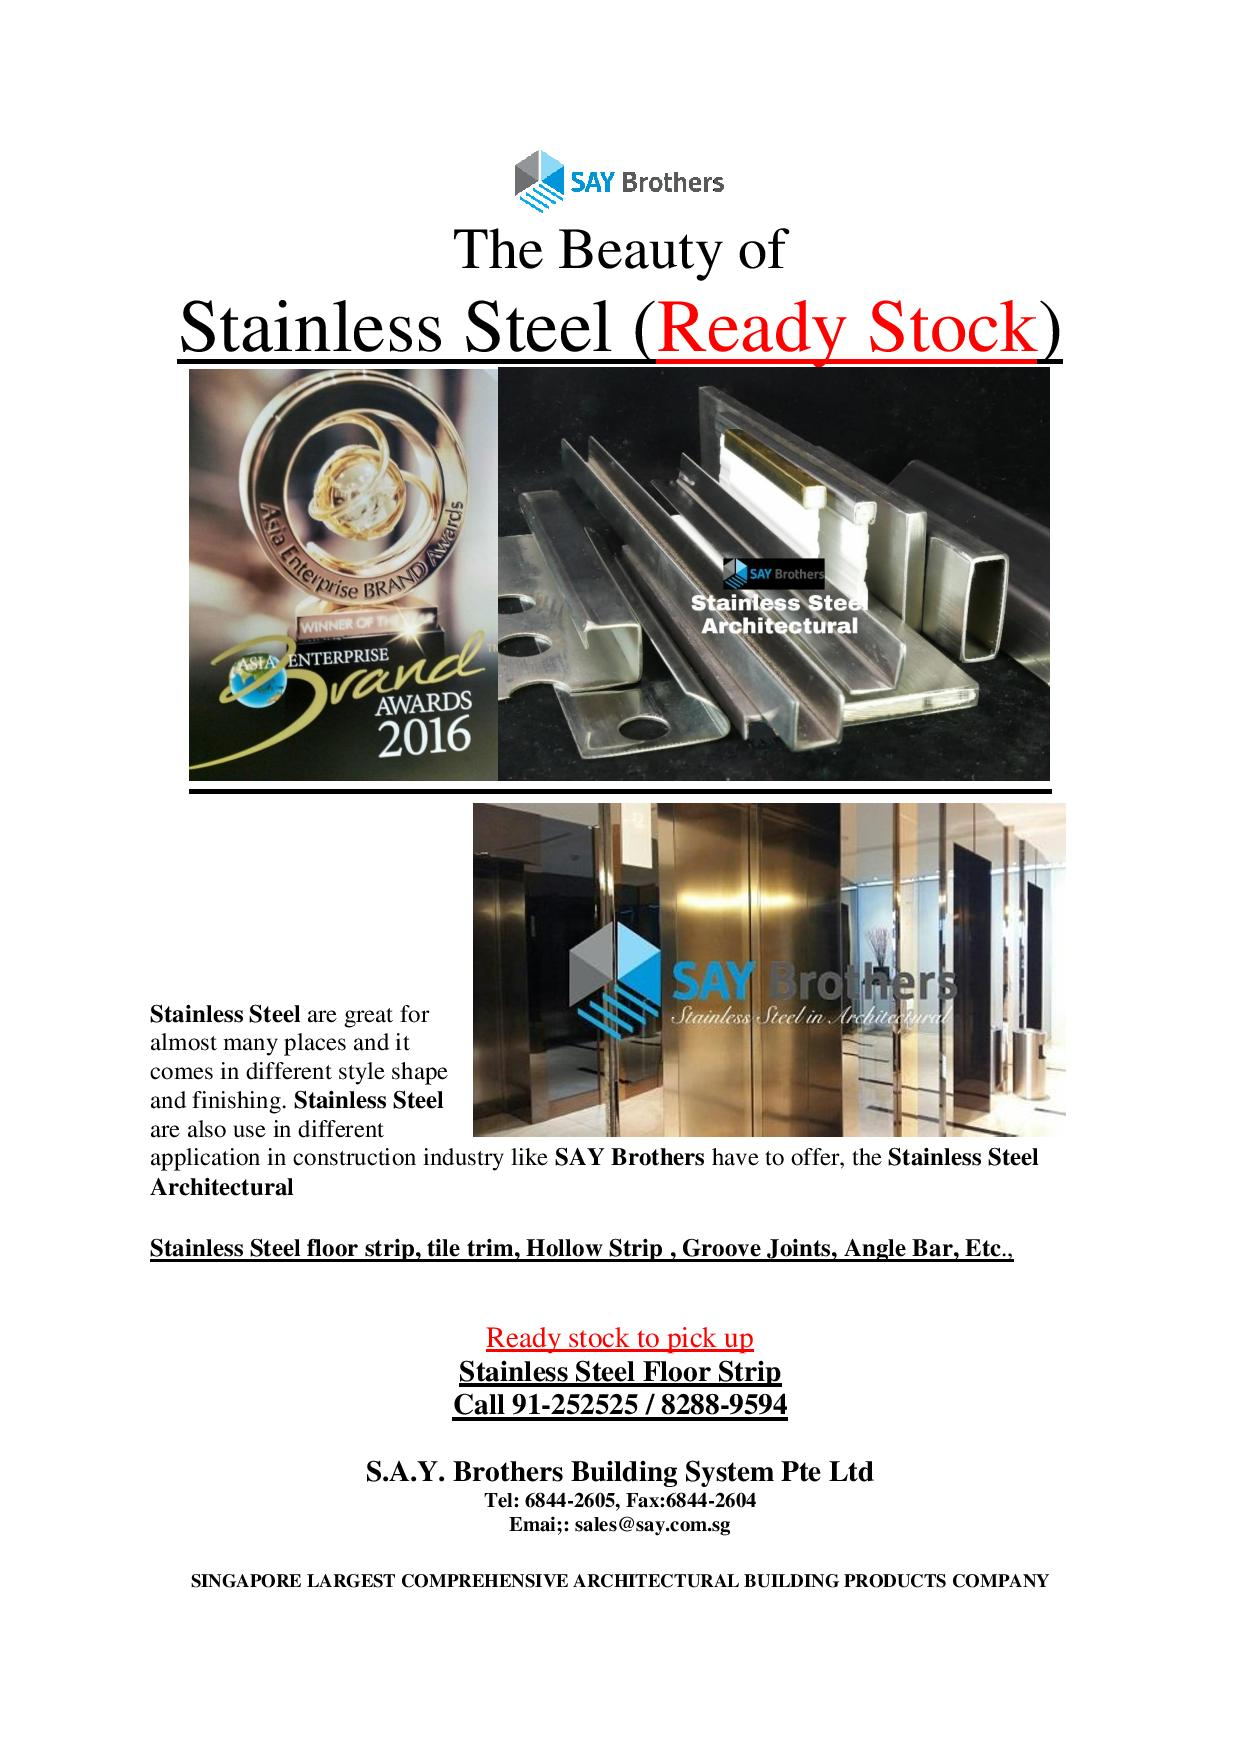 STAINLESS STEEL FROM SAY